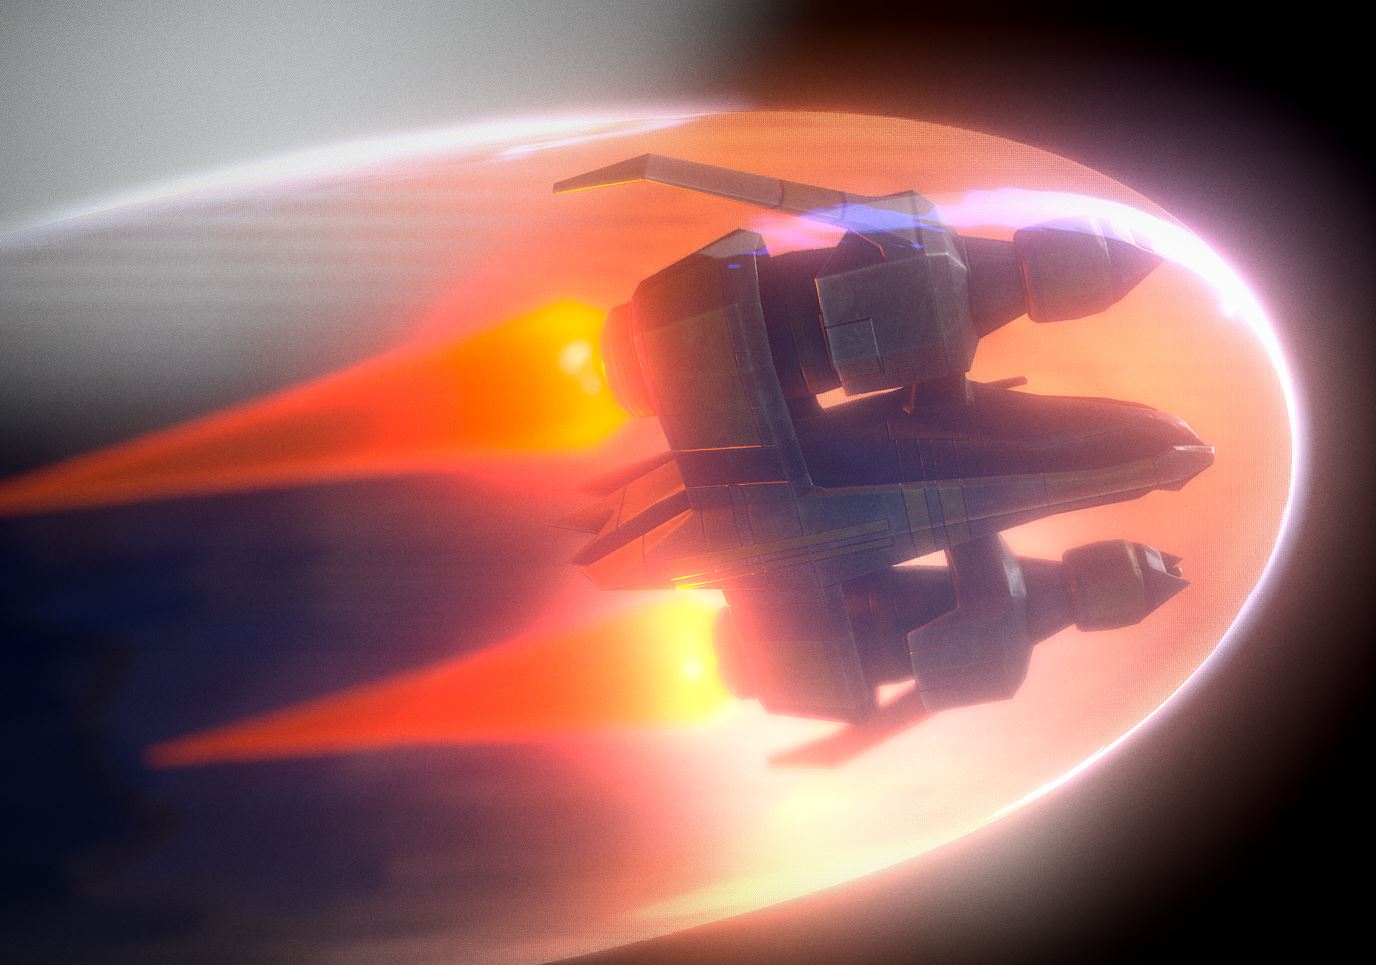 Star Fighter Spacecraft with Shield and Laser Animation